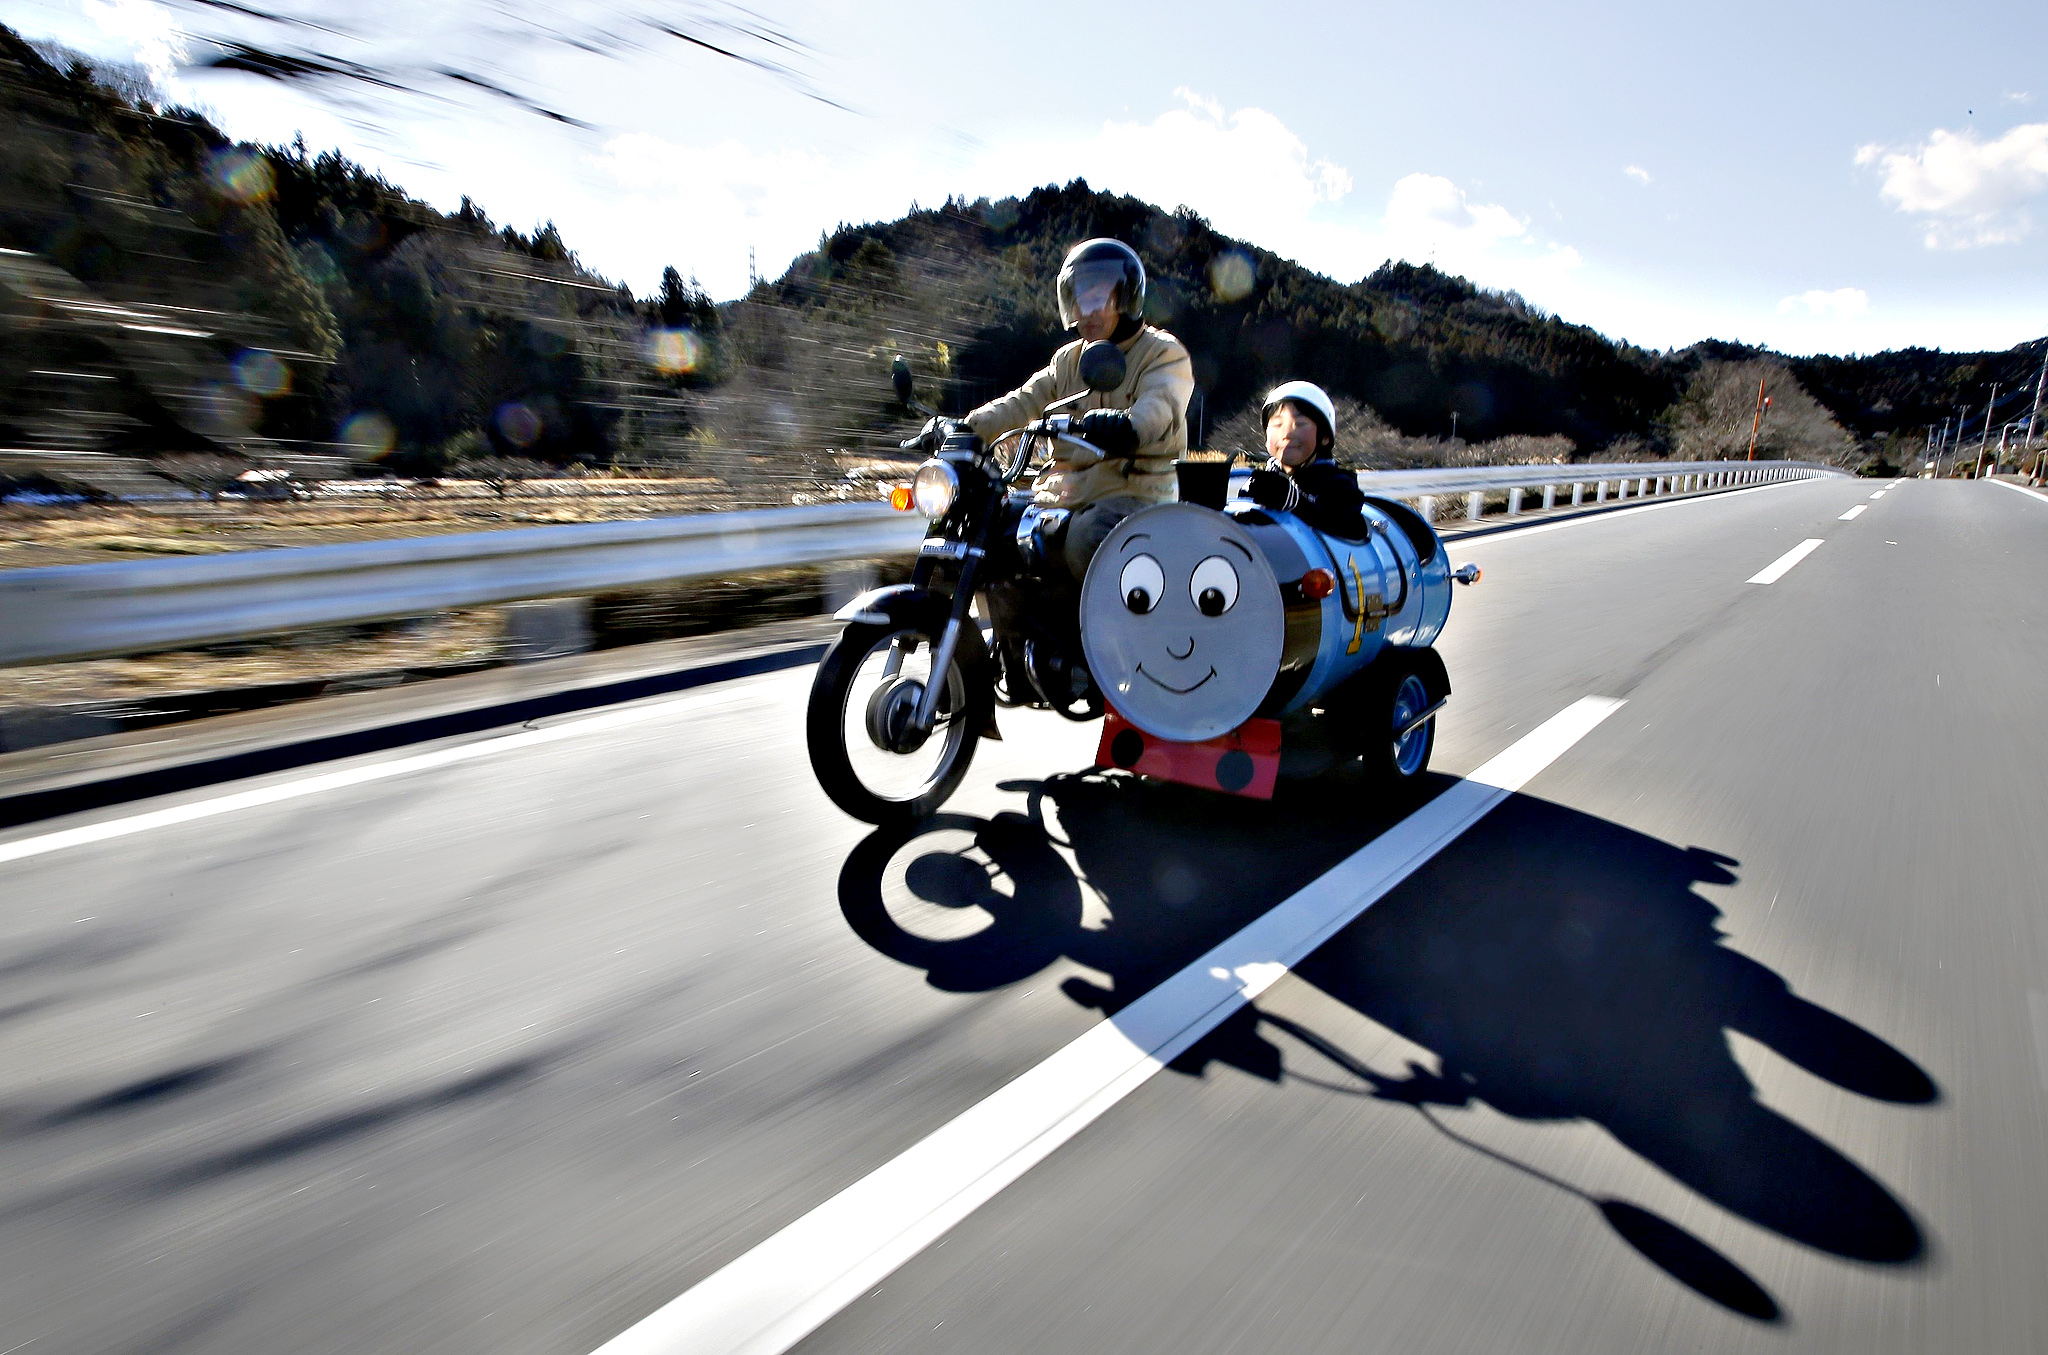 Sadao Kimbara rides on a Honda motorcycle with a sidecar he made out of an oil barrel as his grandson Rui smiles in the sidecar in Ome, outskirts of Tokyo...Sadao Kimbara (L) rides on a Honda motorcycle with a sidecar he made out of an oil barrel as his grandson Rui smiles in the sidecar in Ome, outskirts of Tokyo February 14, 2015. Saudi Arabia's oil exports have risen in February in response to stronger demand from customers. As OPEC's top producer battles for market share Reuters photographers around the globe have been photographing oil barrels to document how they are utilised once the fuel has been used.